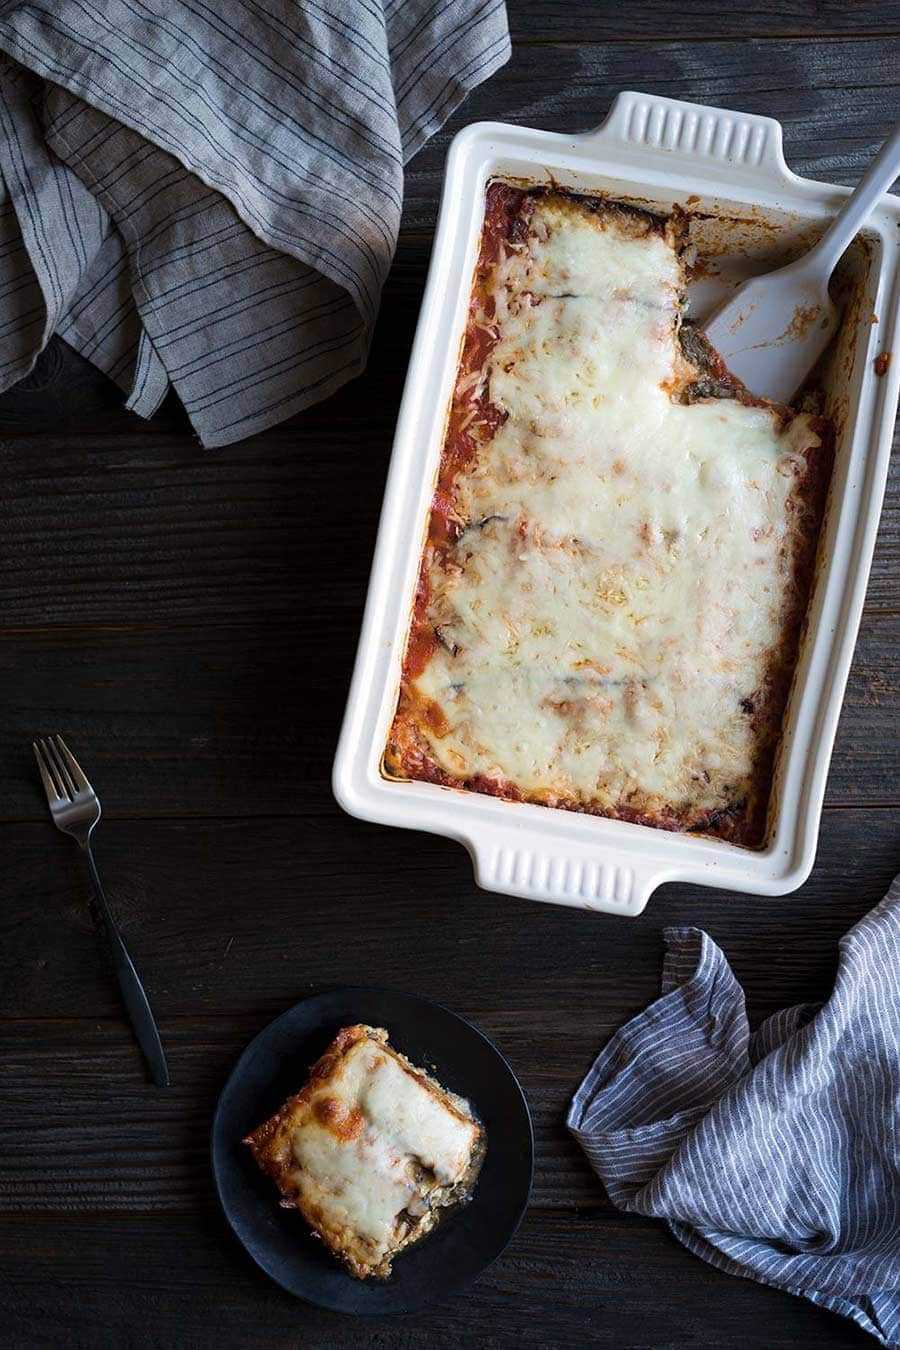 This easy vegetarian Eggplant Lasagna recipe is a wonderful option if you're trying to cut back on pasta! It's a flavorful, filling Italian dinner.